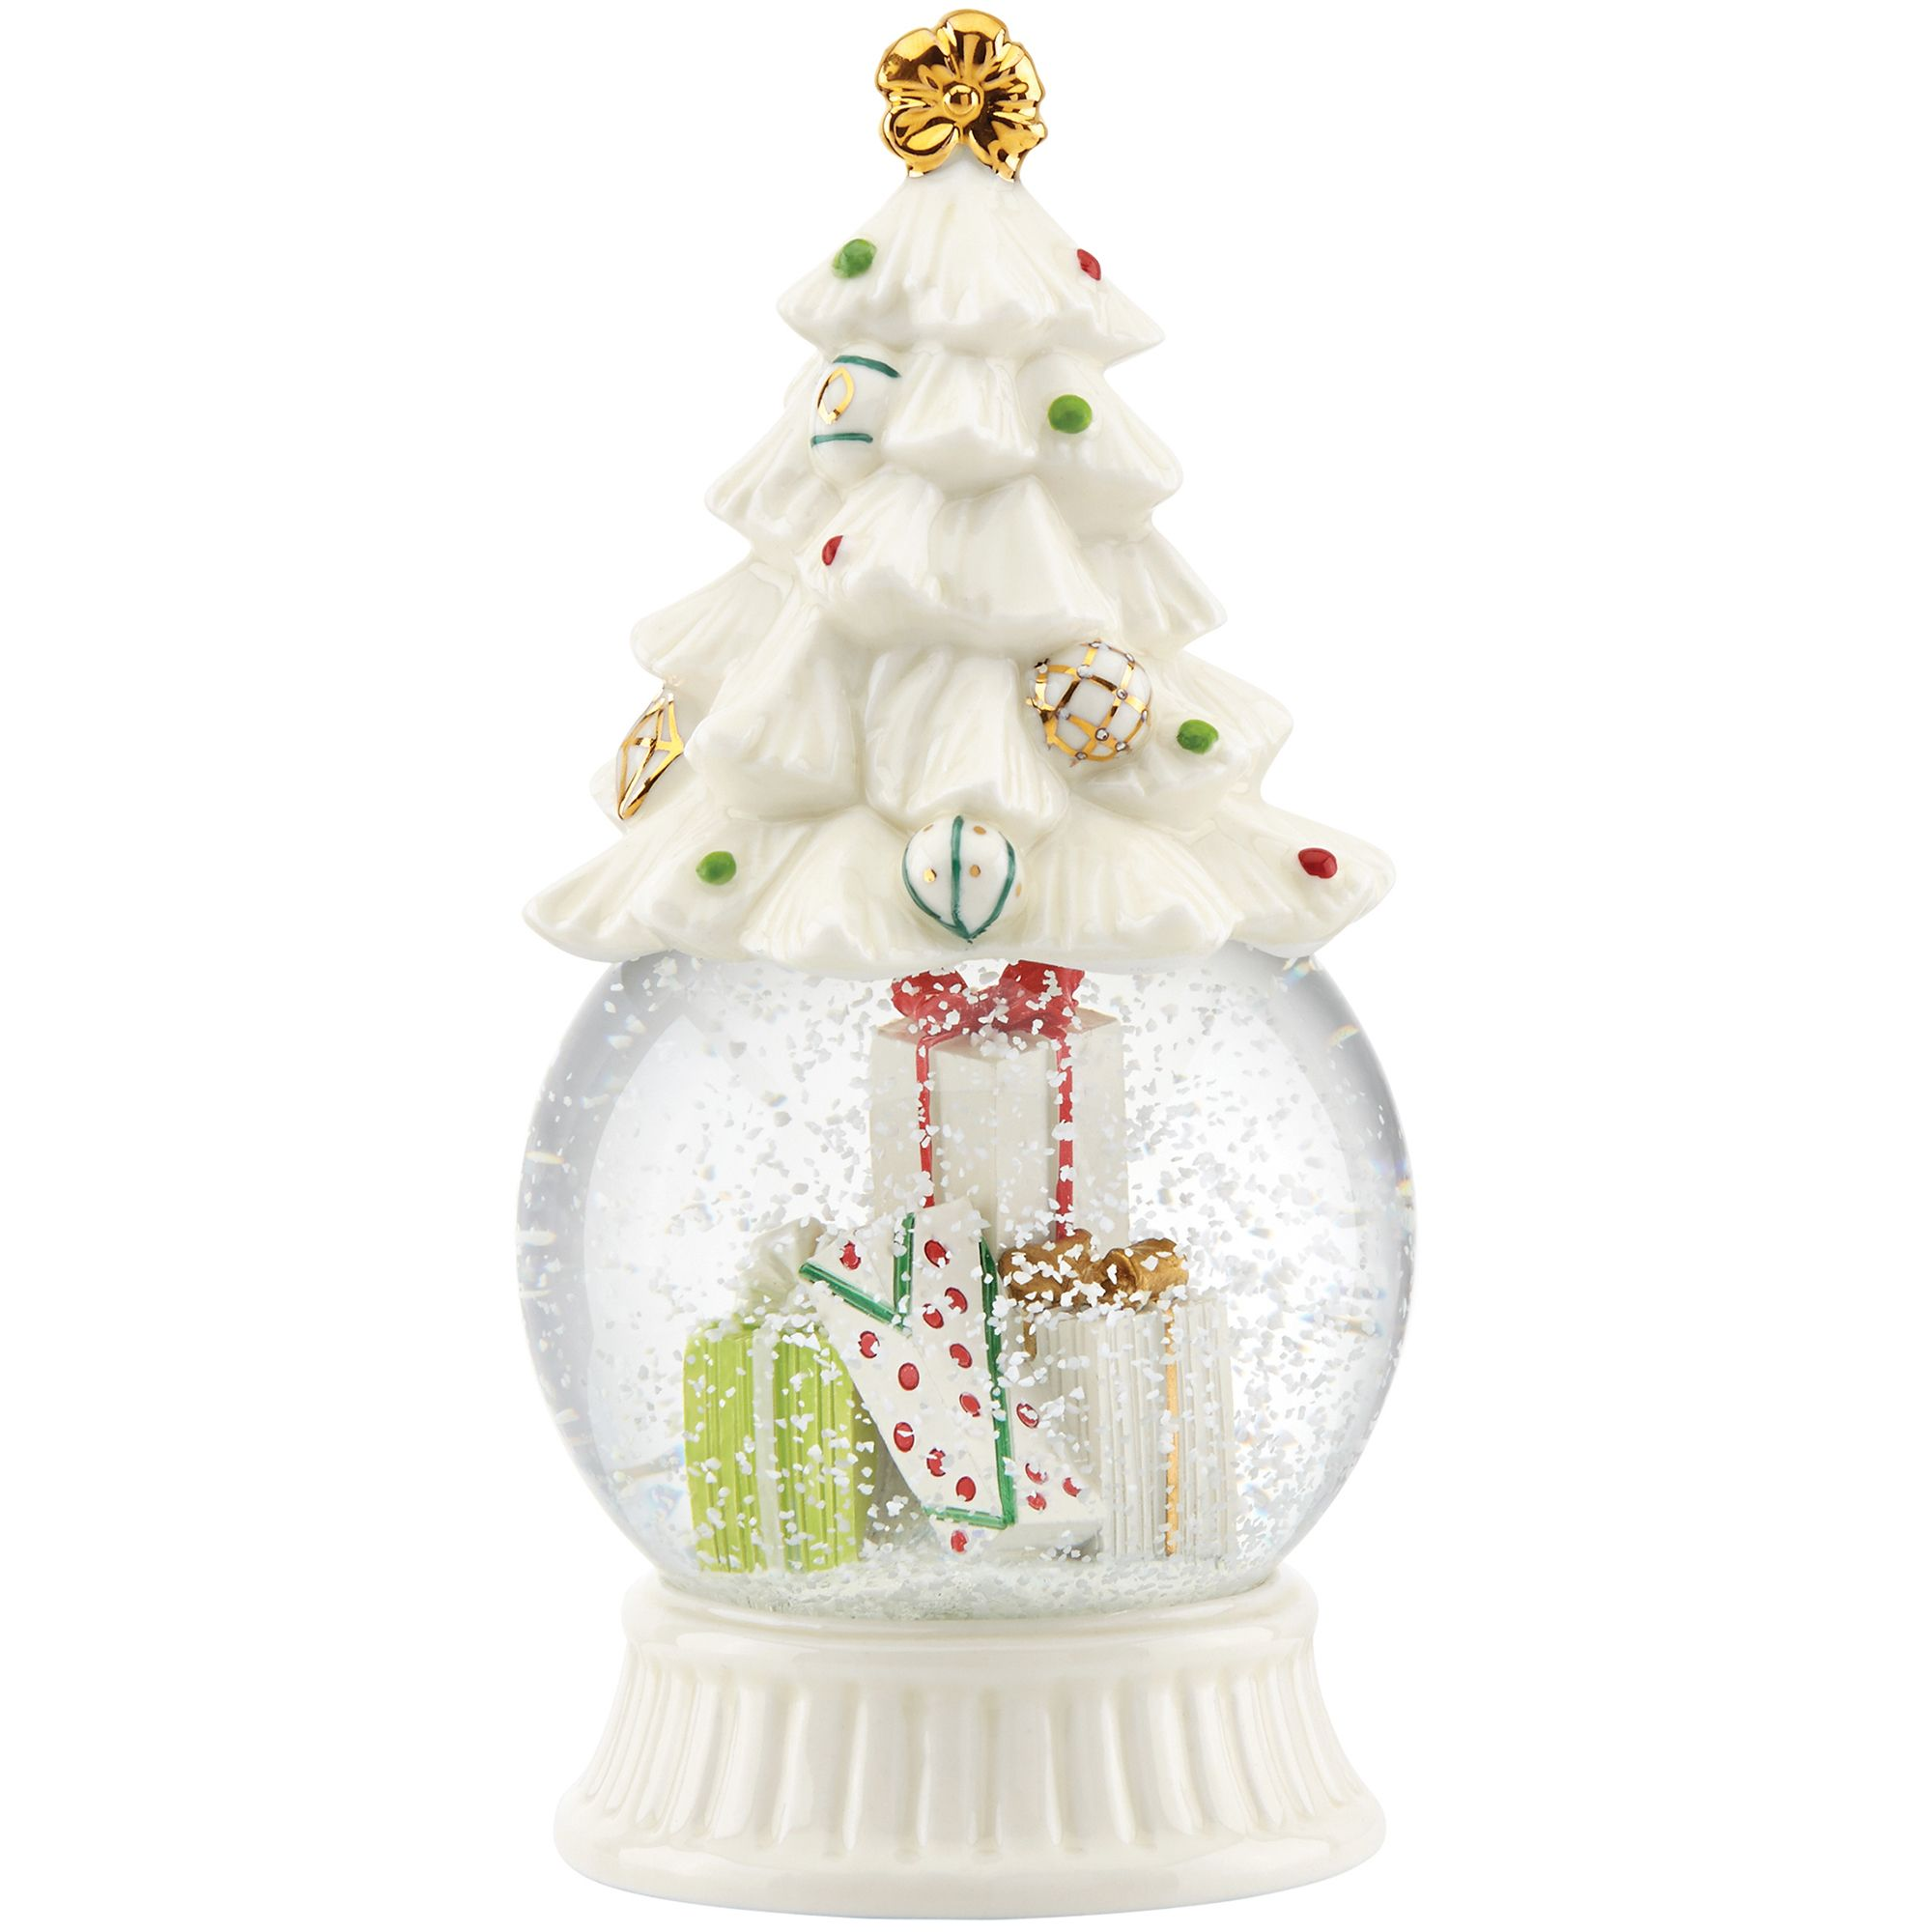 Snowing christmas decoration let it snow - A Decorated Porcelain Christmas Tree Tops The Snow Globe With Colorful Presents Inside The Globe